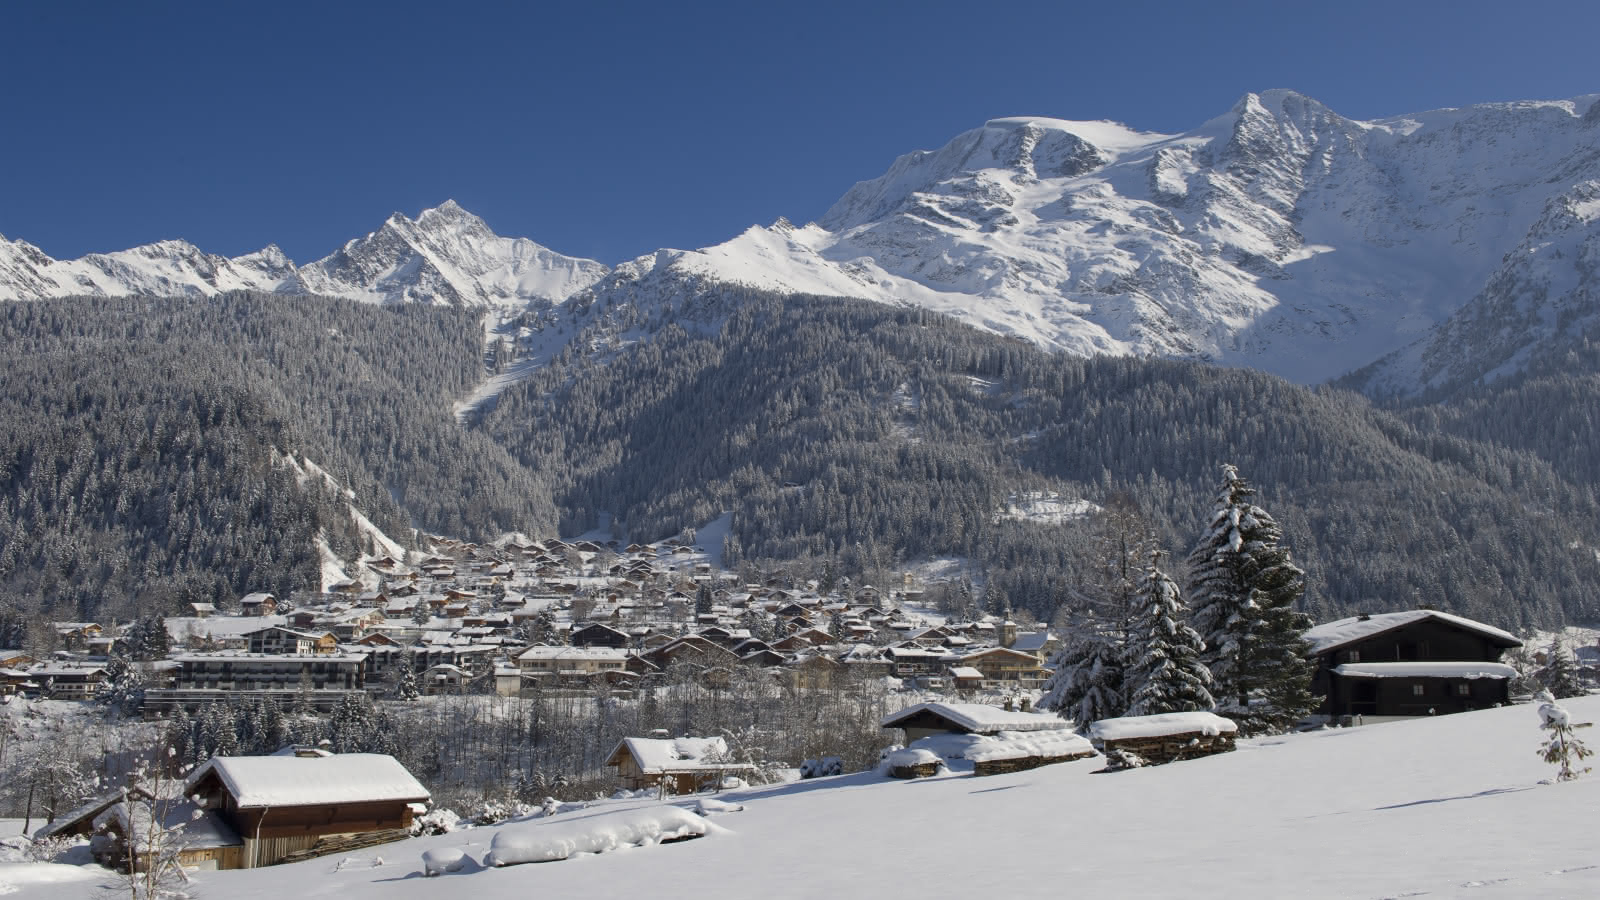 Les Contamines village in winter